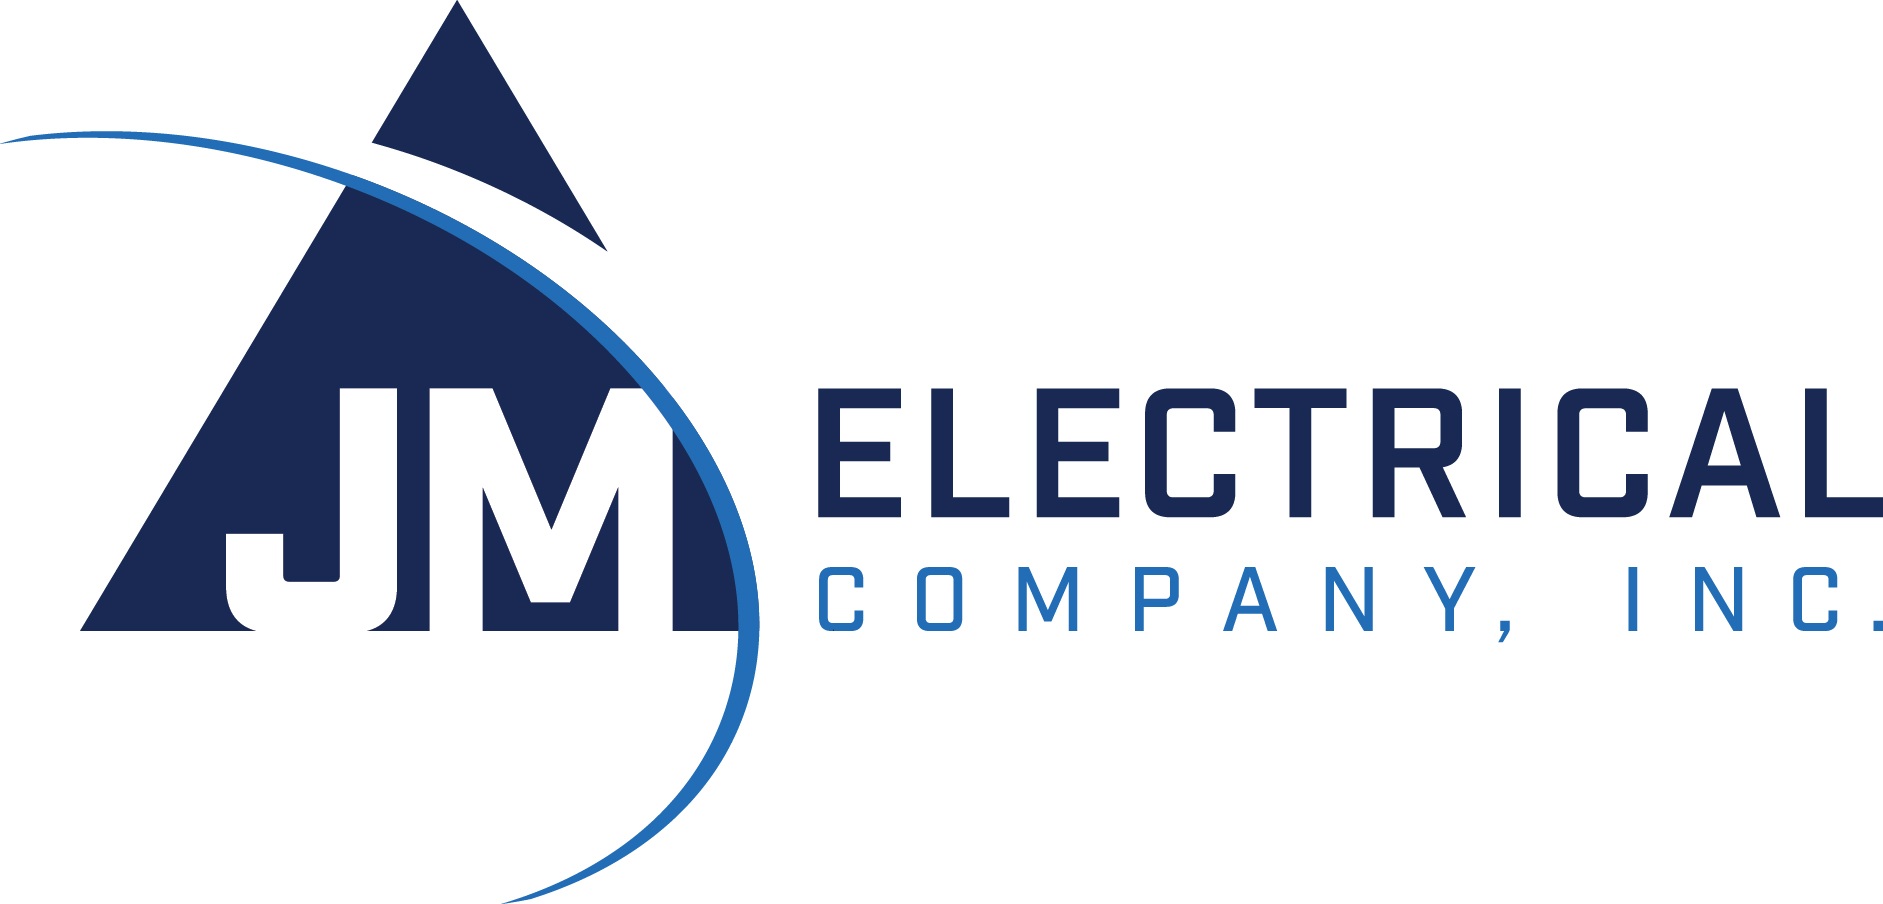 Jmelectric logo final